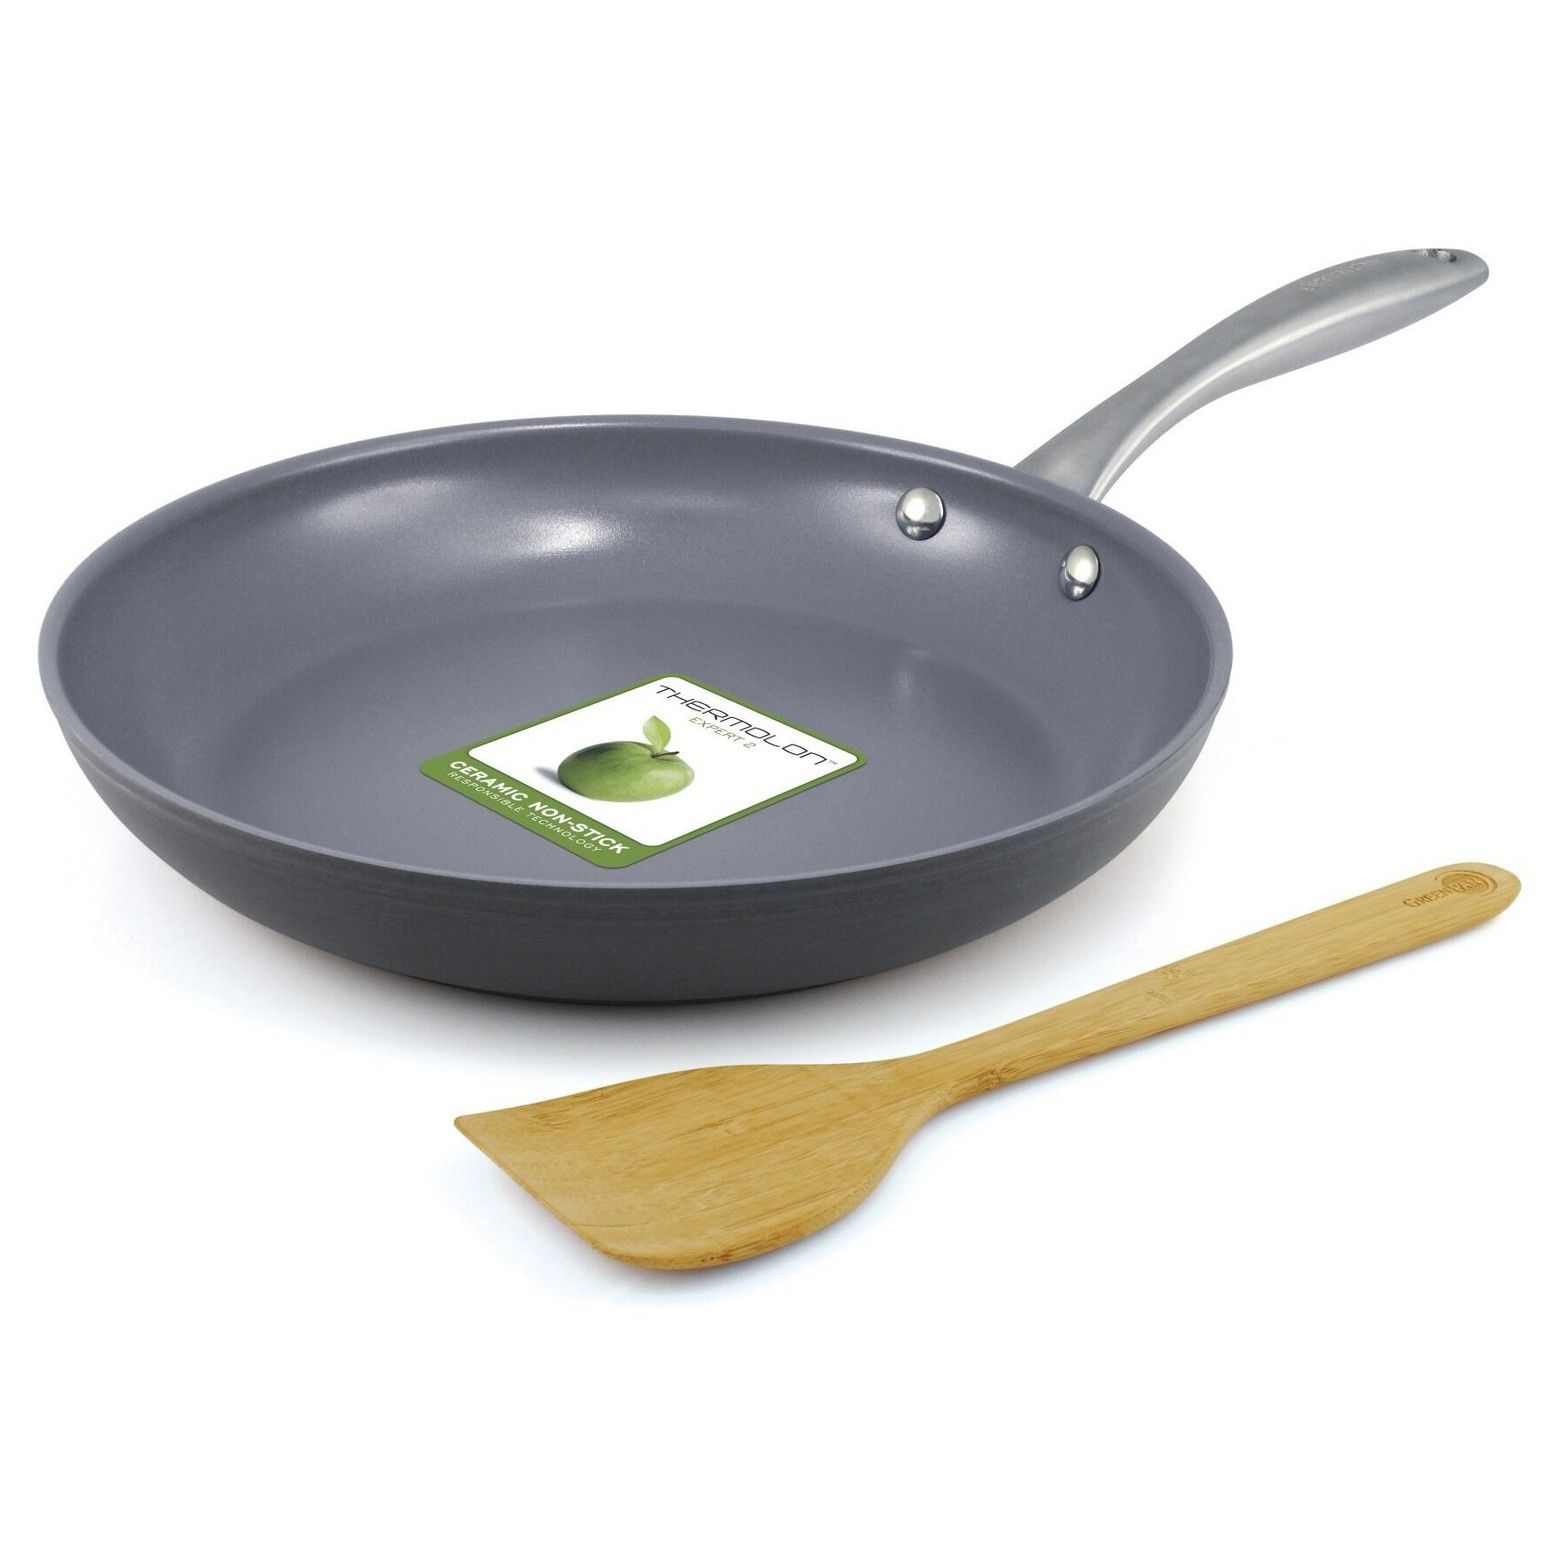 The Greenpan 153 Lima Collection Has Everything To Satisfy Even The Most Demanding Cook The Classic Pots And Pans Made Of Har Greenpan Pan Ceramic Non Stick